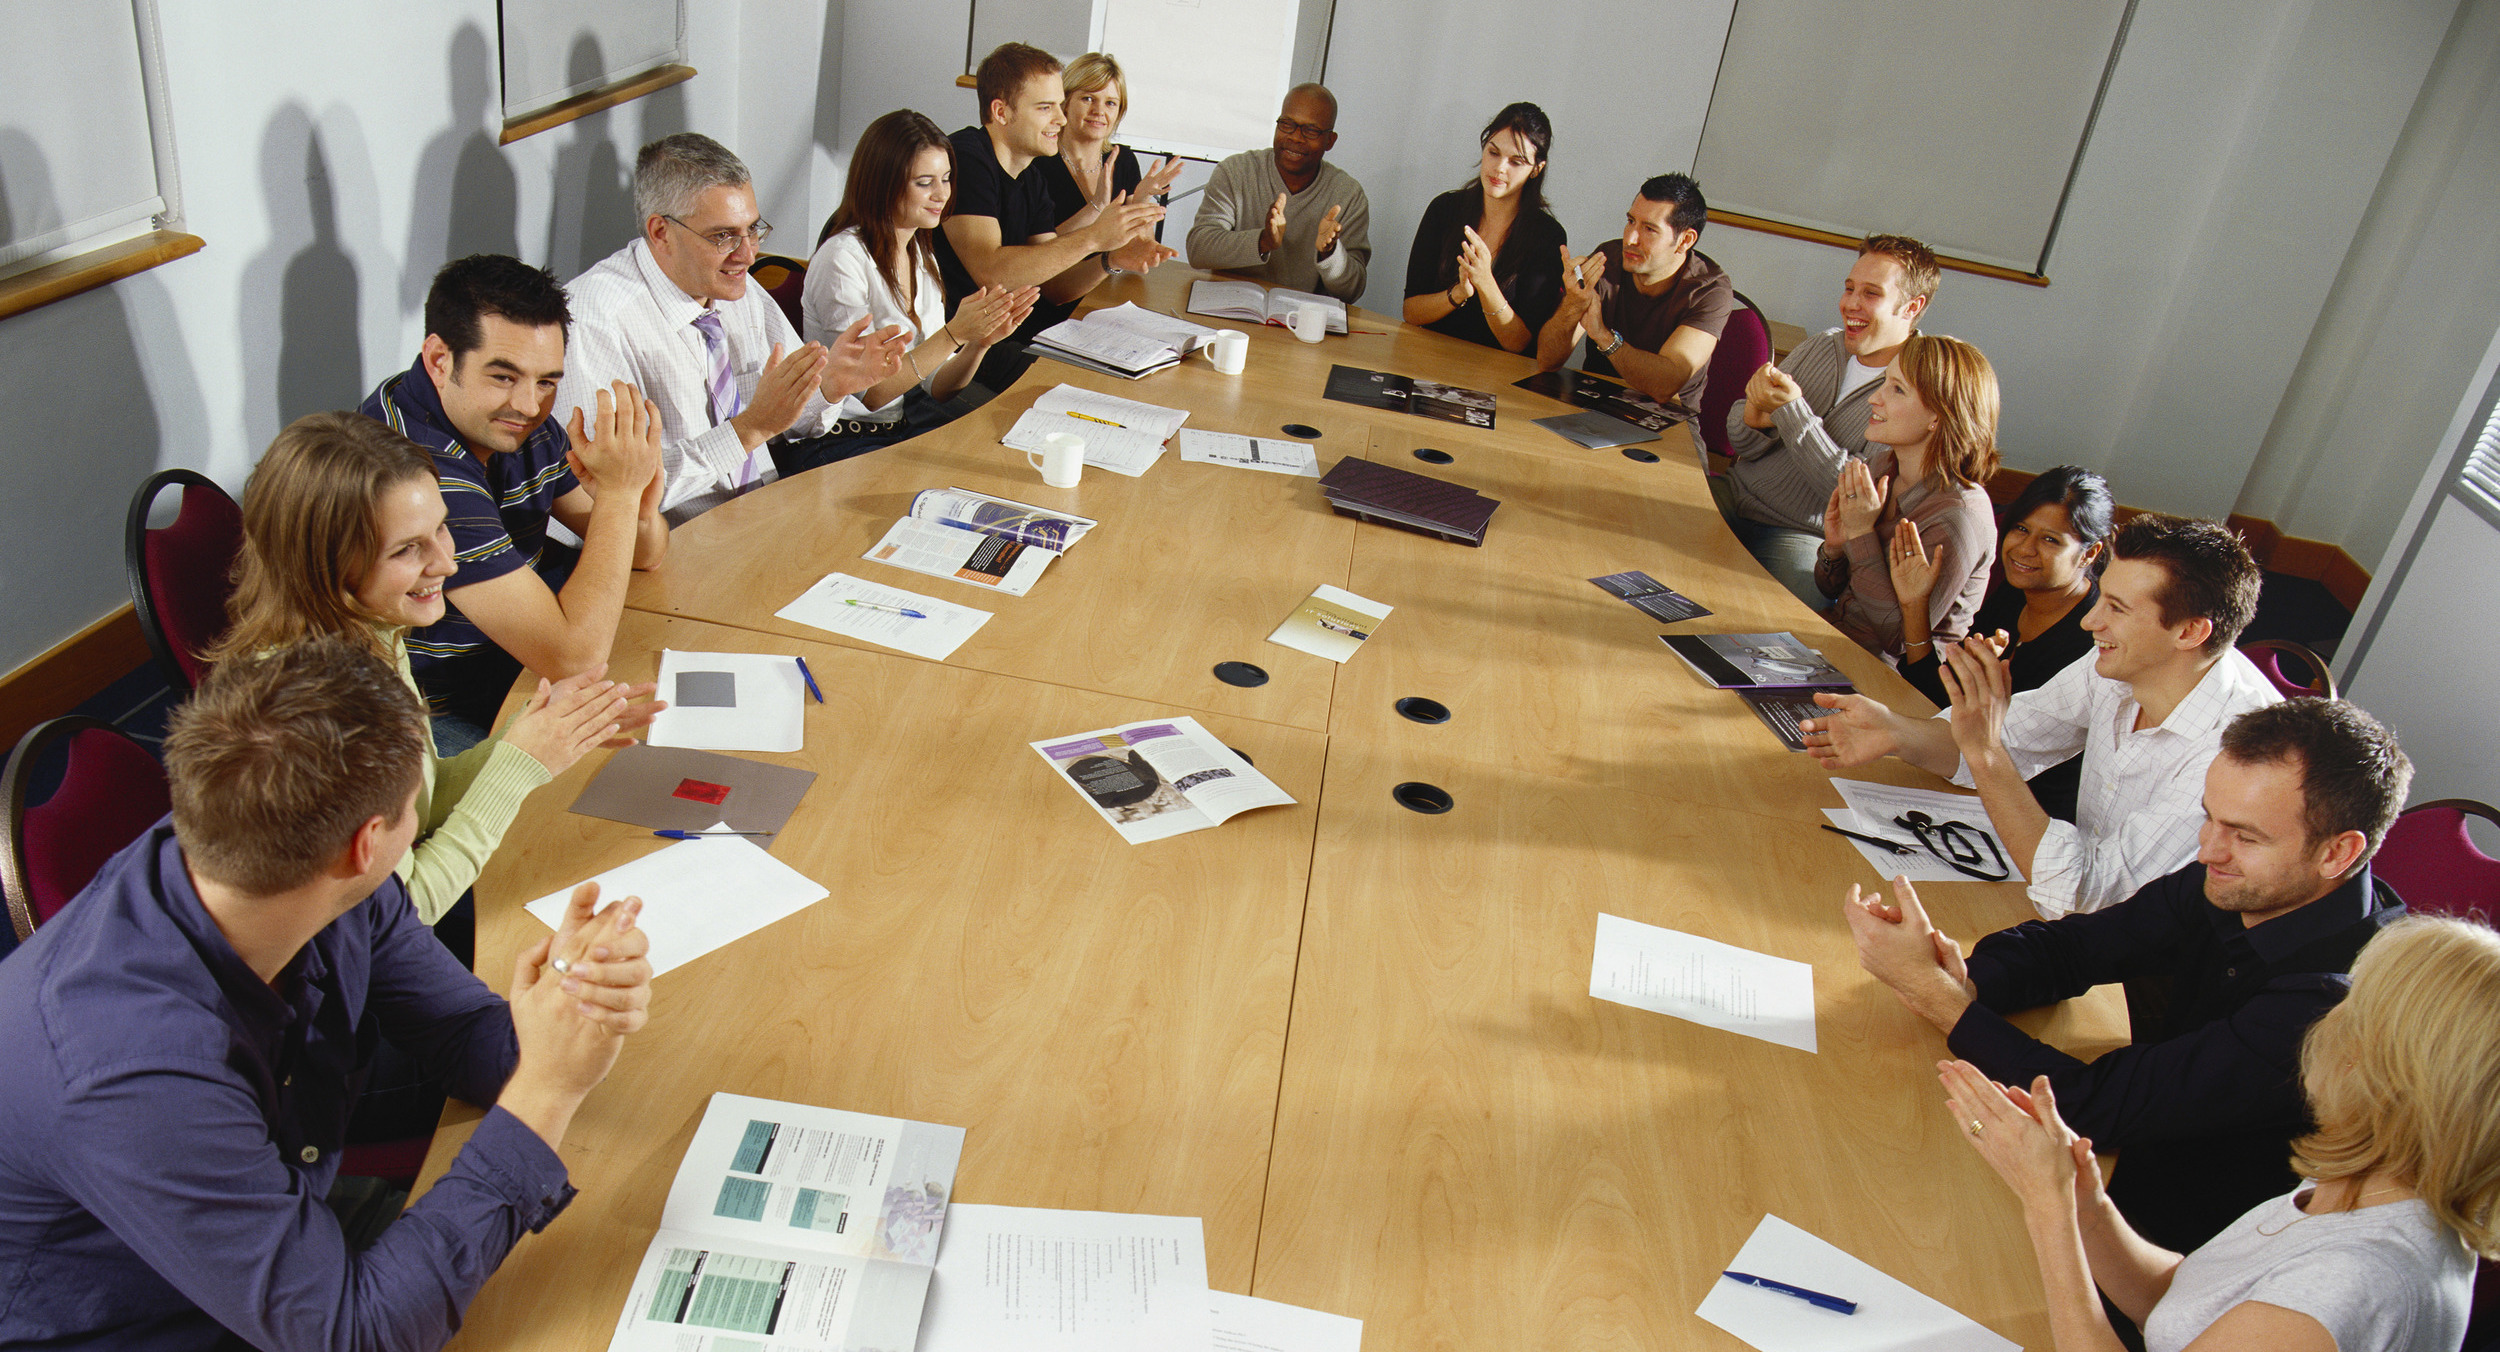 7 surprisingly simple ways to become a millionaire for 12 person conference table